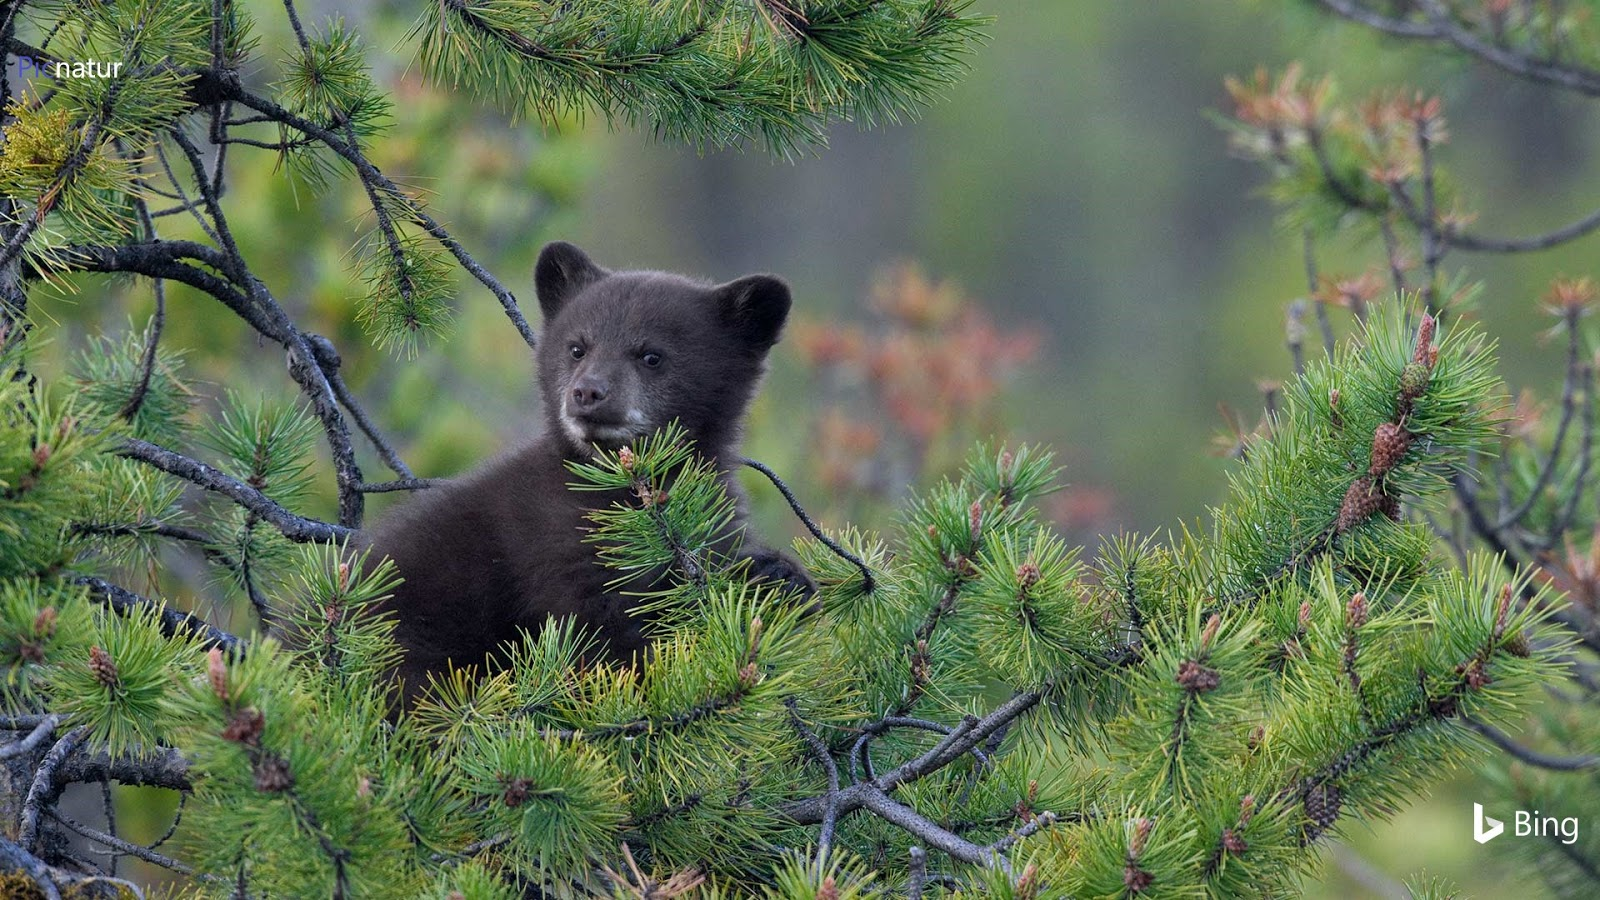 Black bear cub in a pine tree, Jasper National Park, Alberta, Canada © Donald M. Jones/Minden Pictures